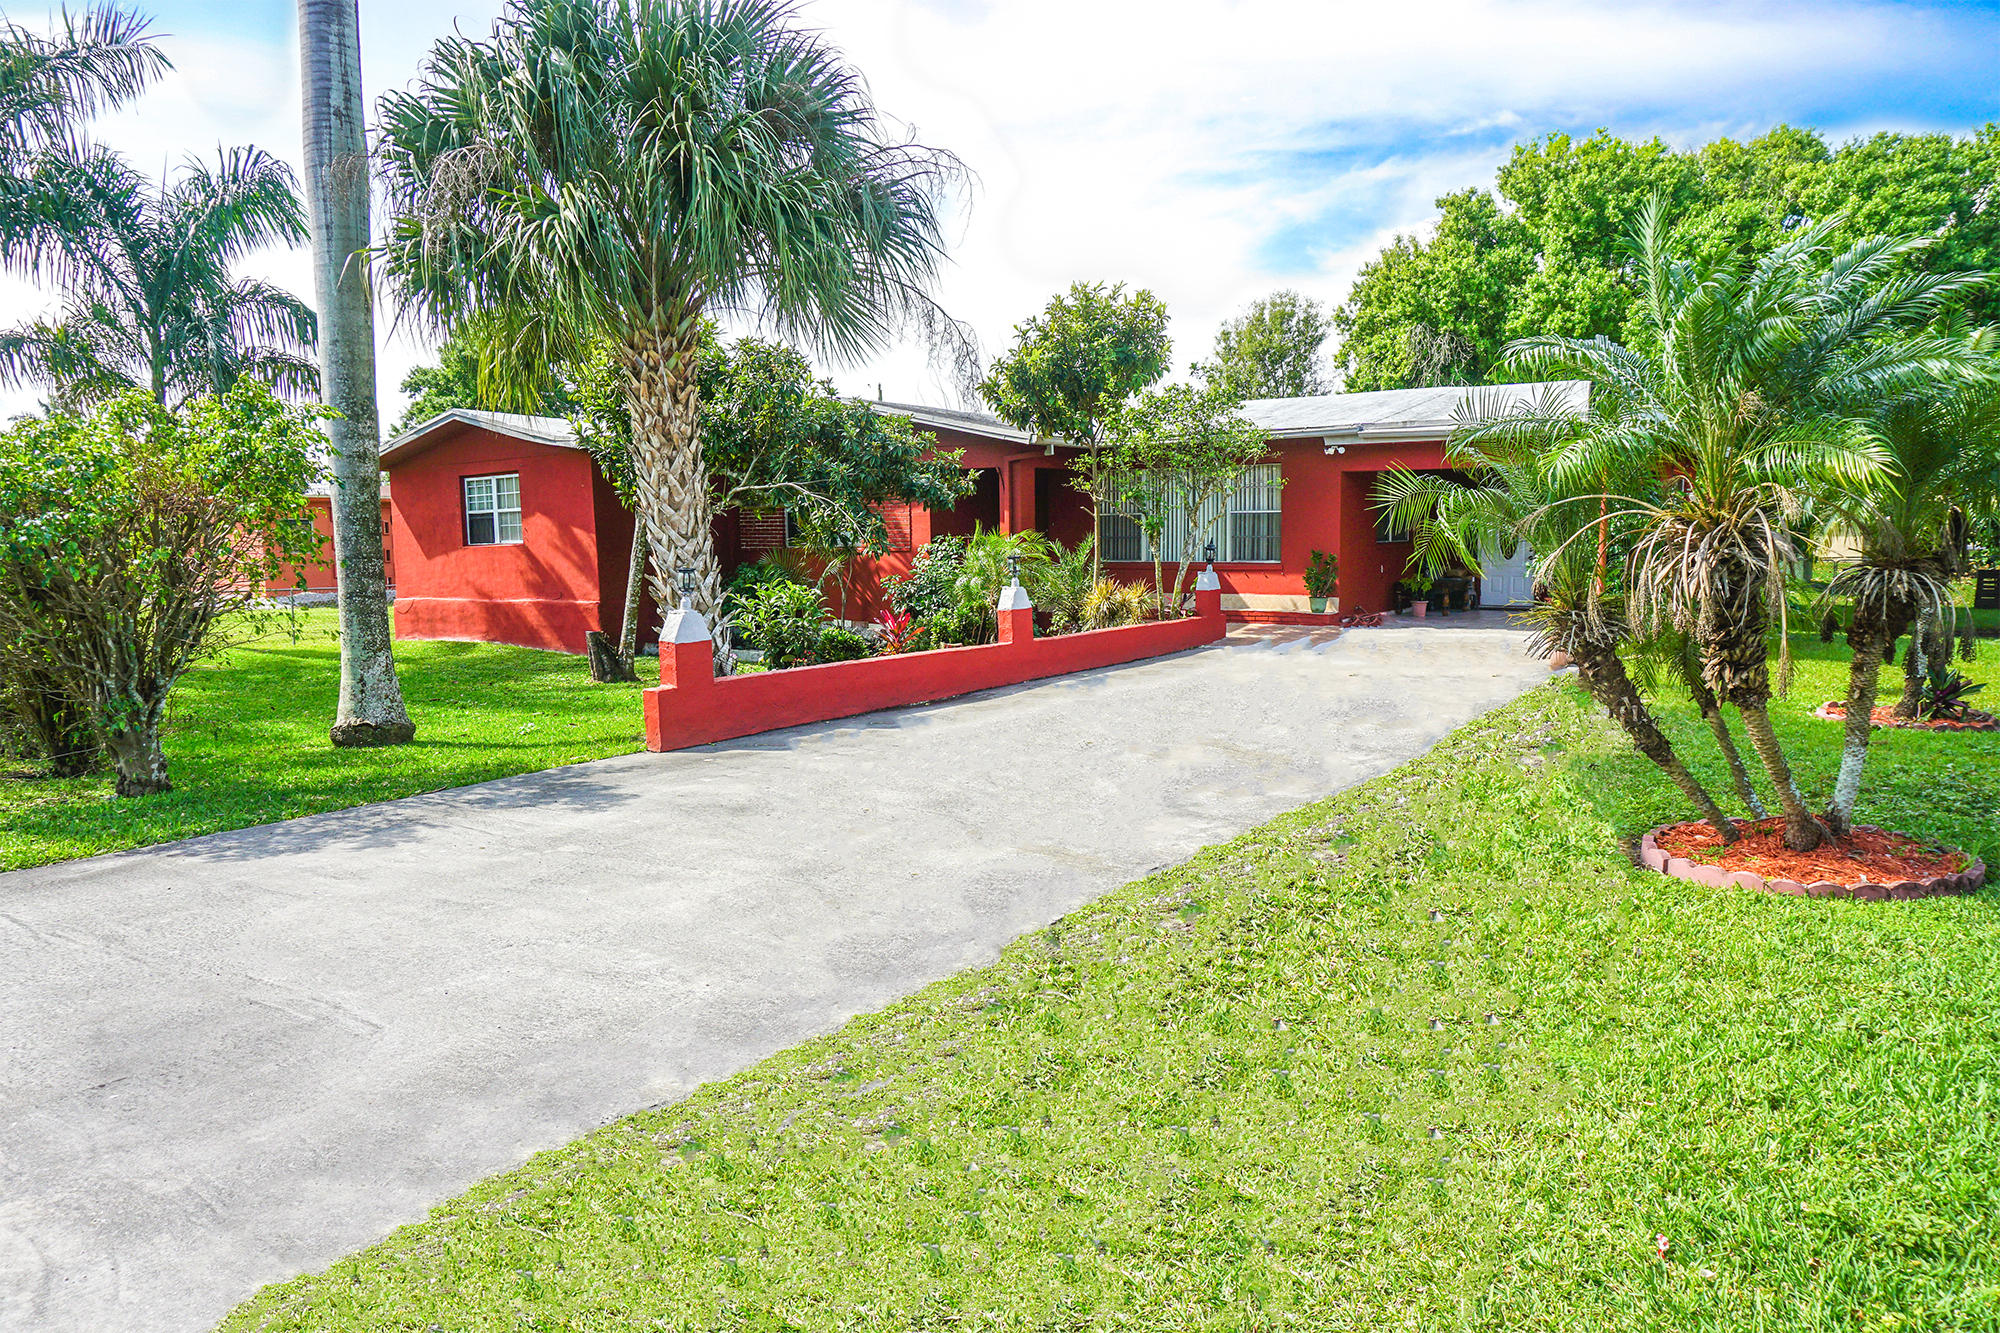 Home for sale in S/D OF 5-44-37, LOT 7 Belle Glade Florida